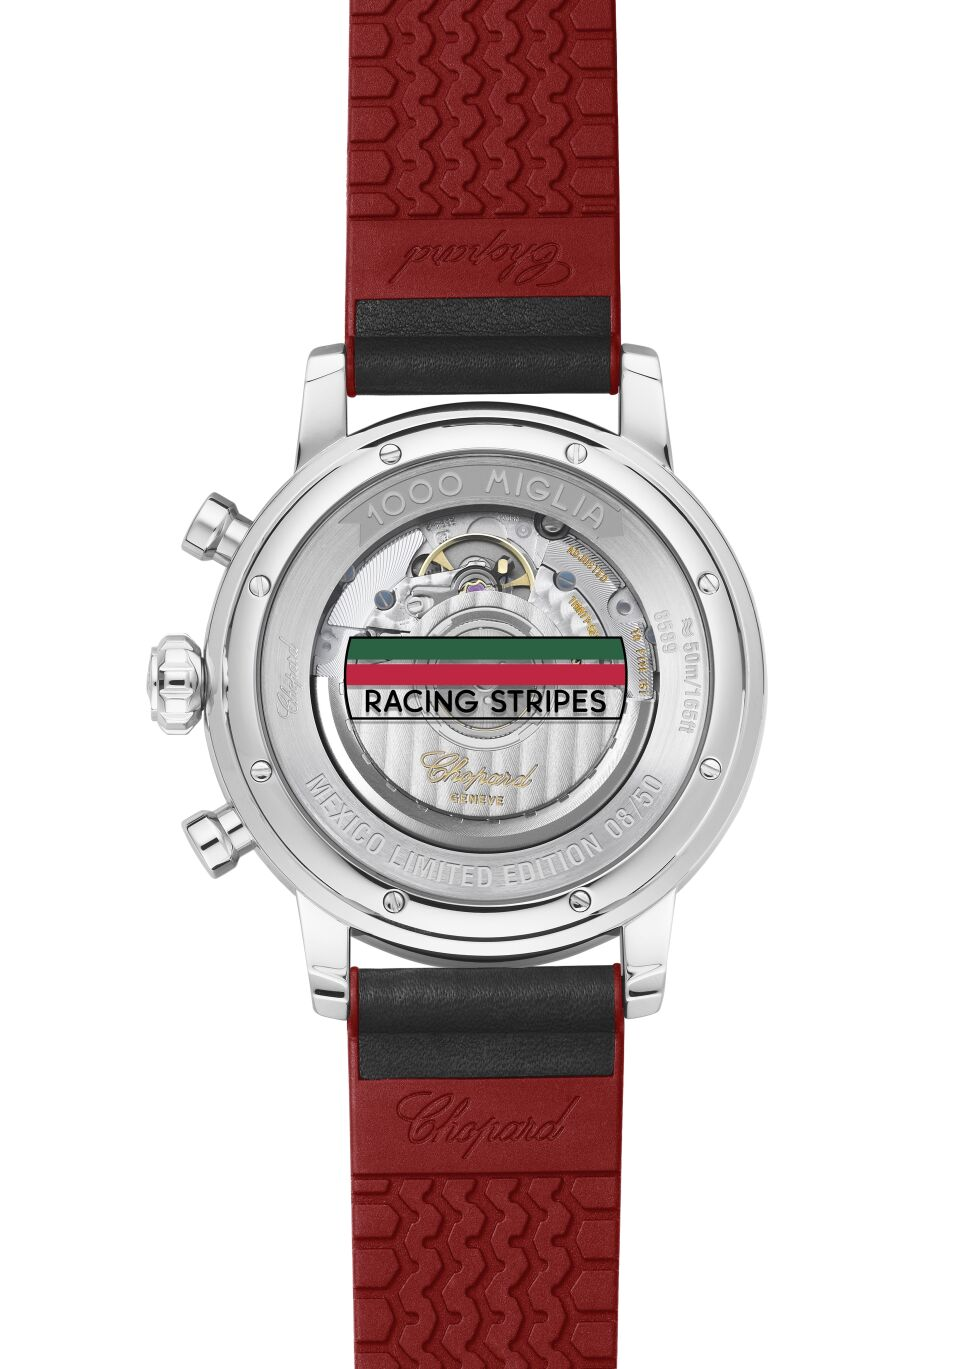 168589-3032_04_d4200 Mille Miglia Racing Stripes Mexico Edition.jpg